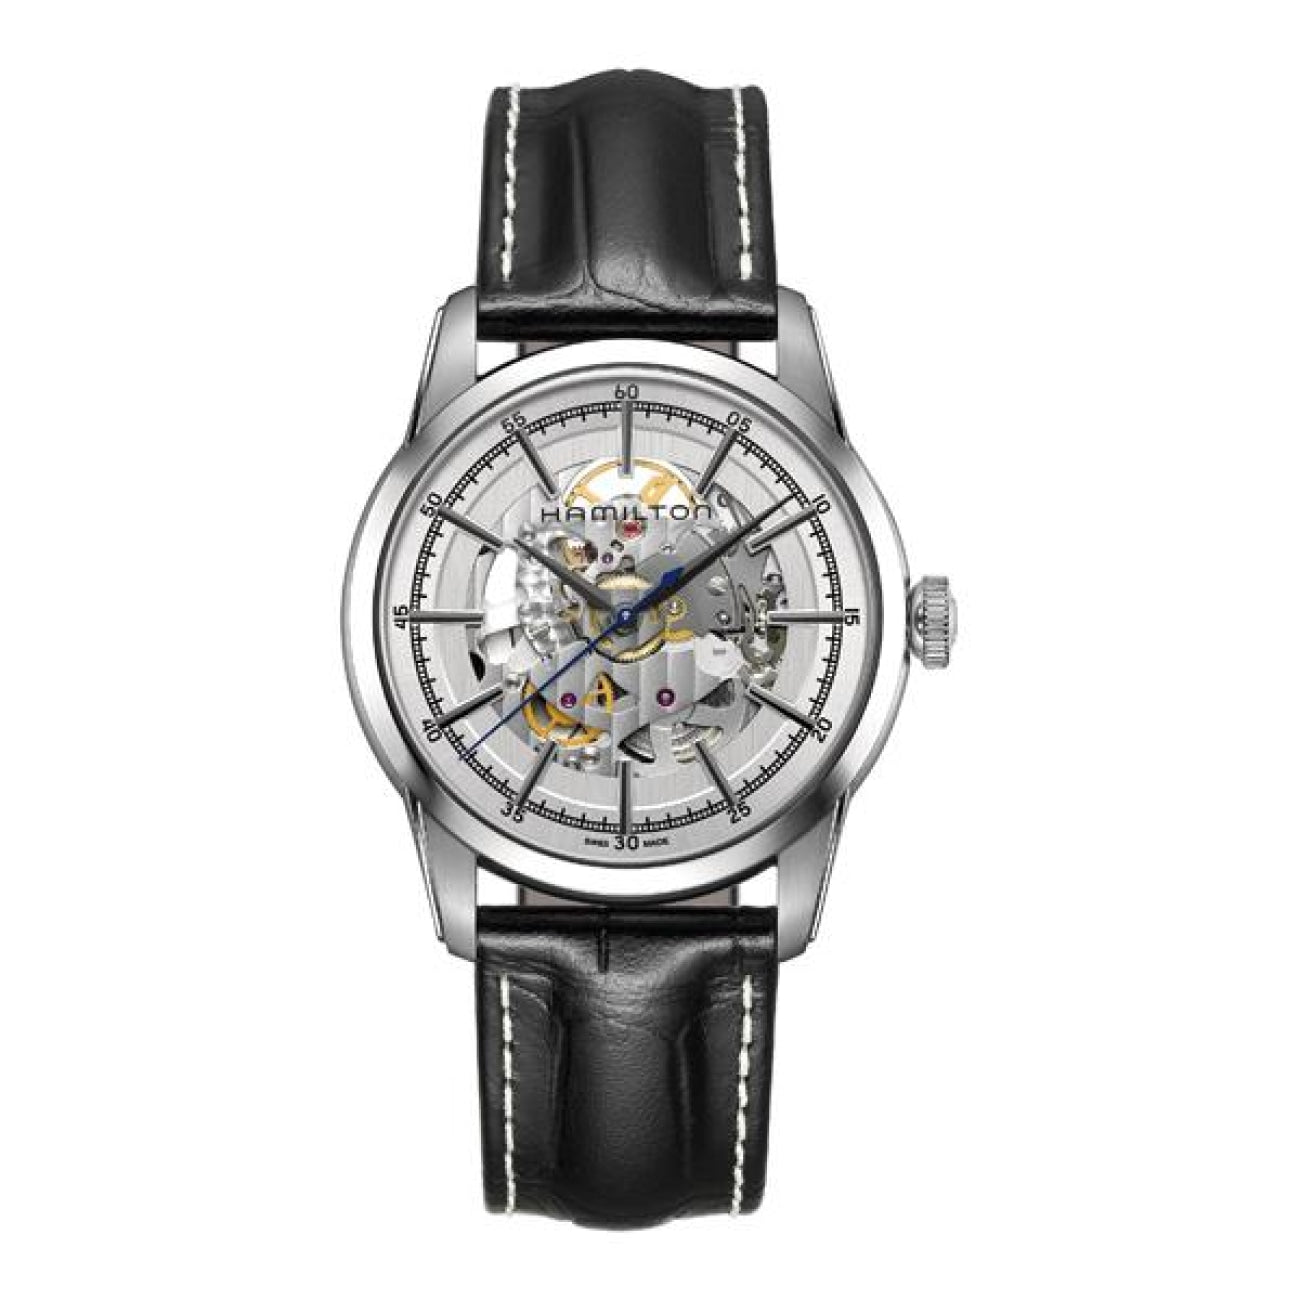 Hamilton Watches - RailRoad Skeleton | Manfredi Jewels